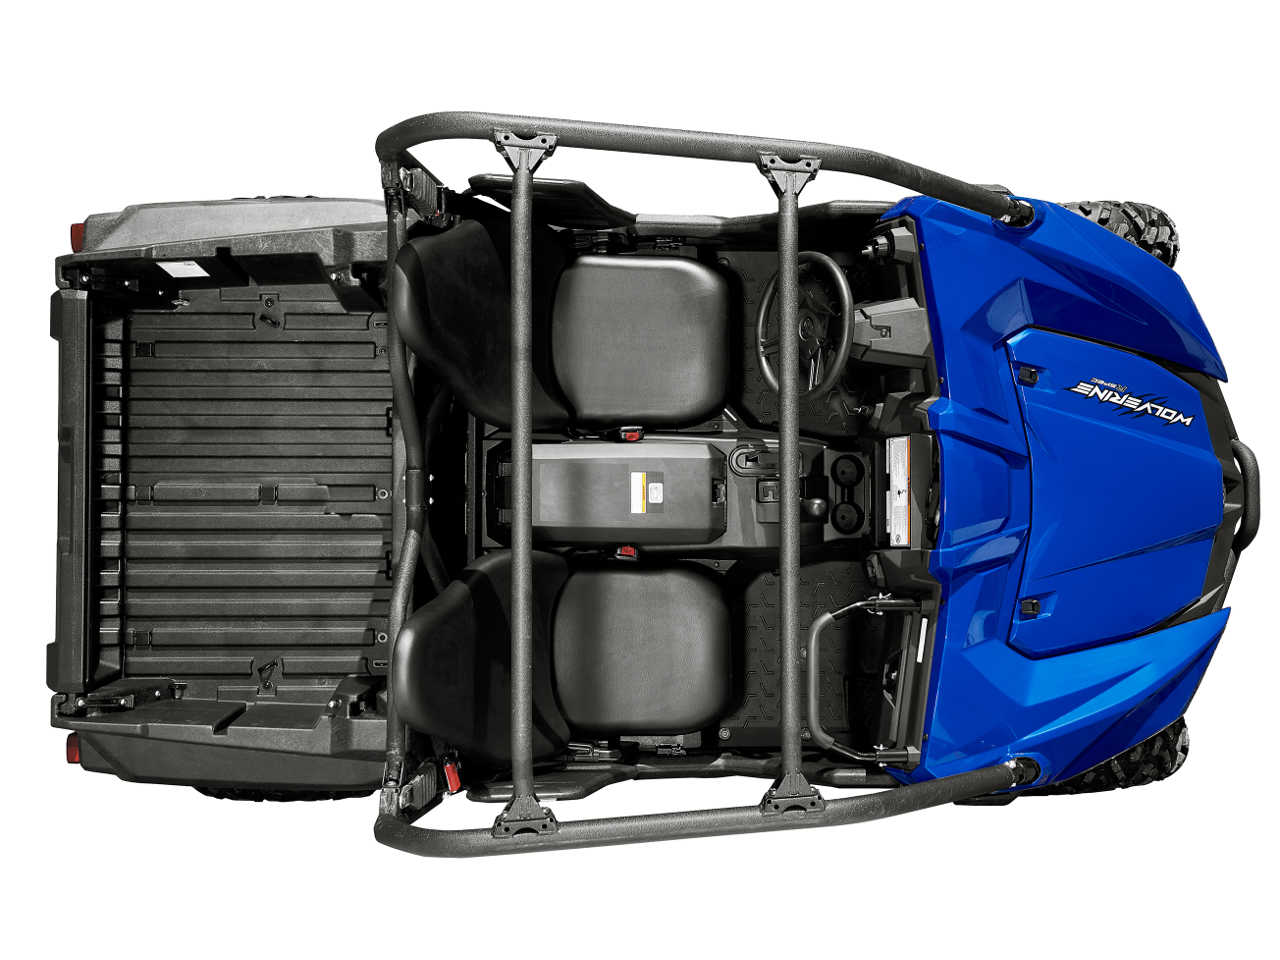 New model review return of the wolverine atv illustrated for Yamaha wolverine r spec top speed